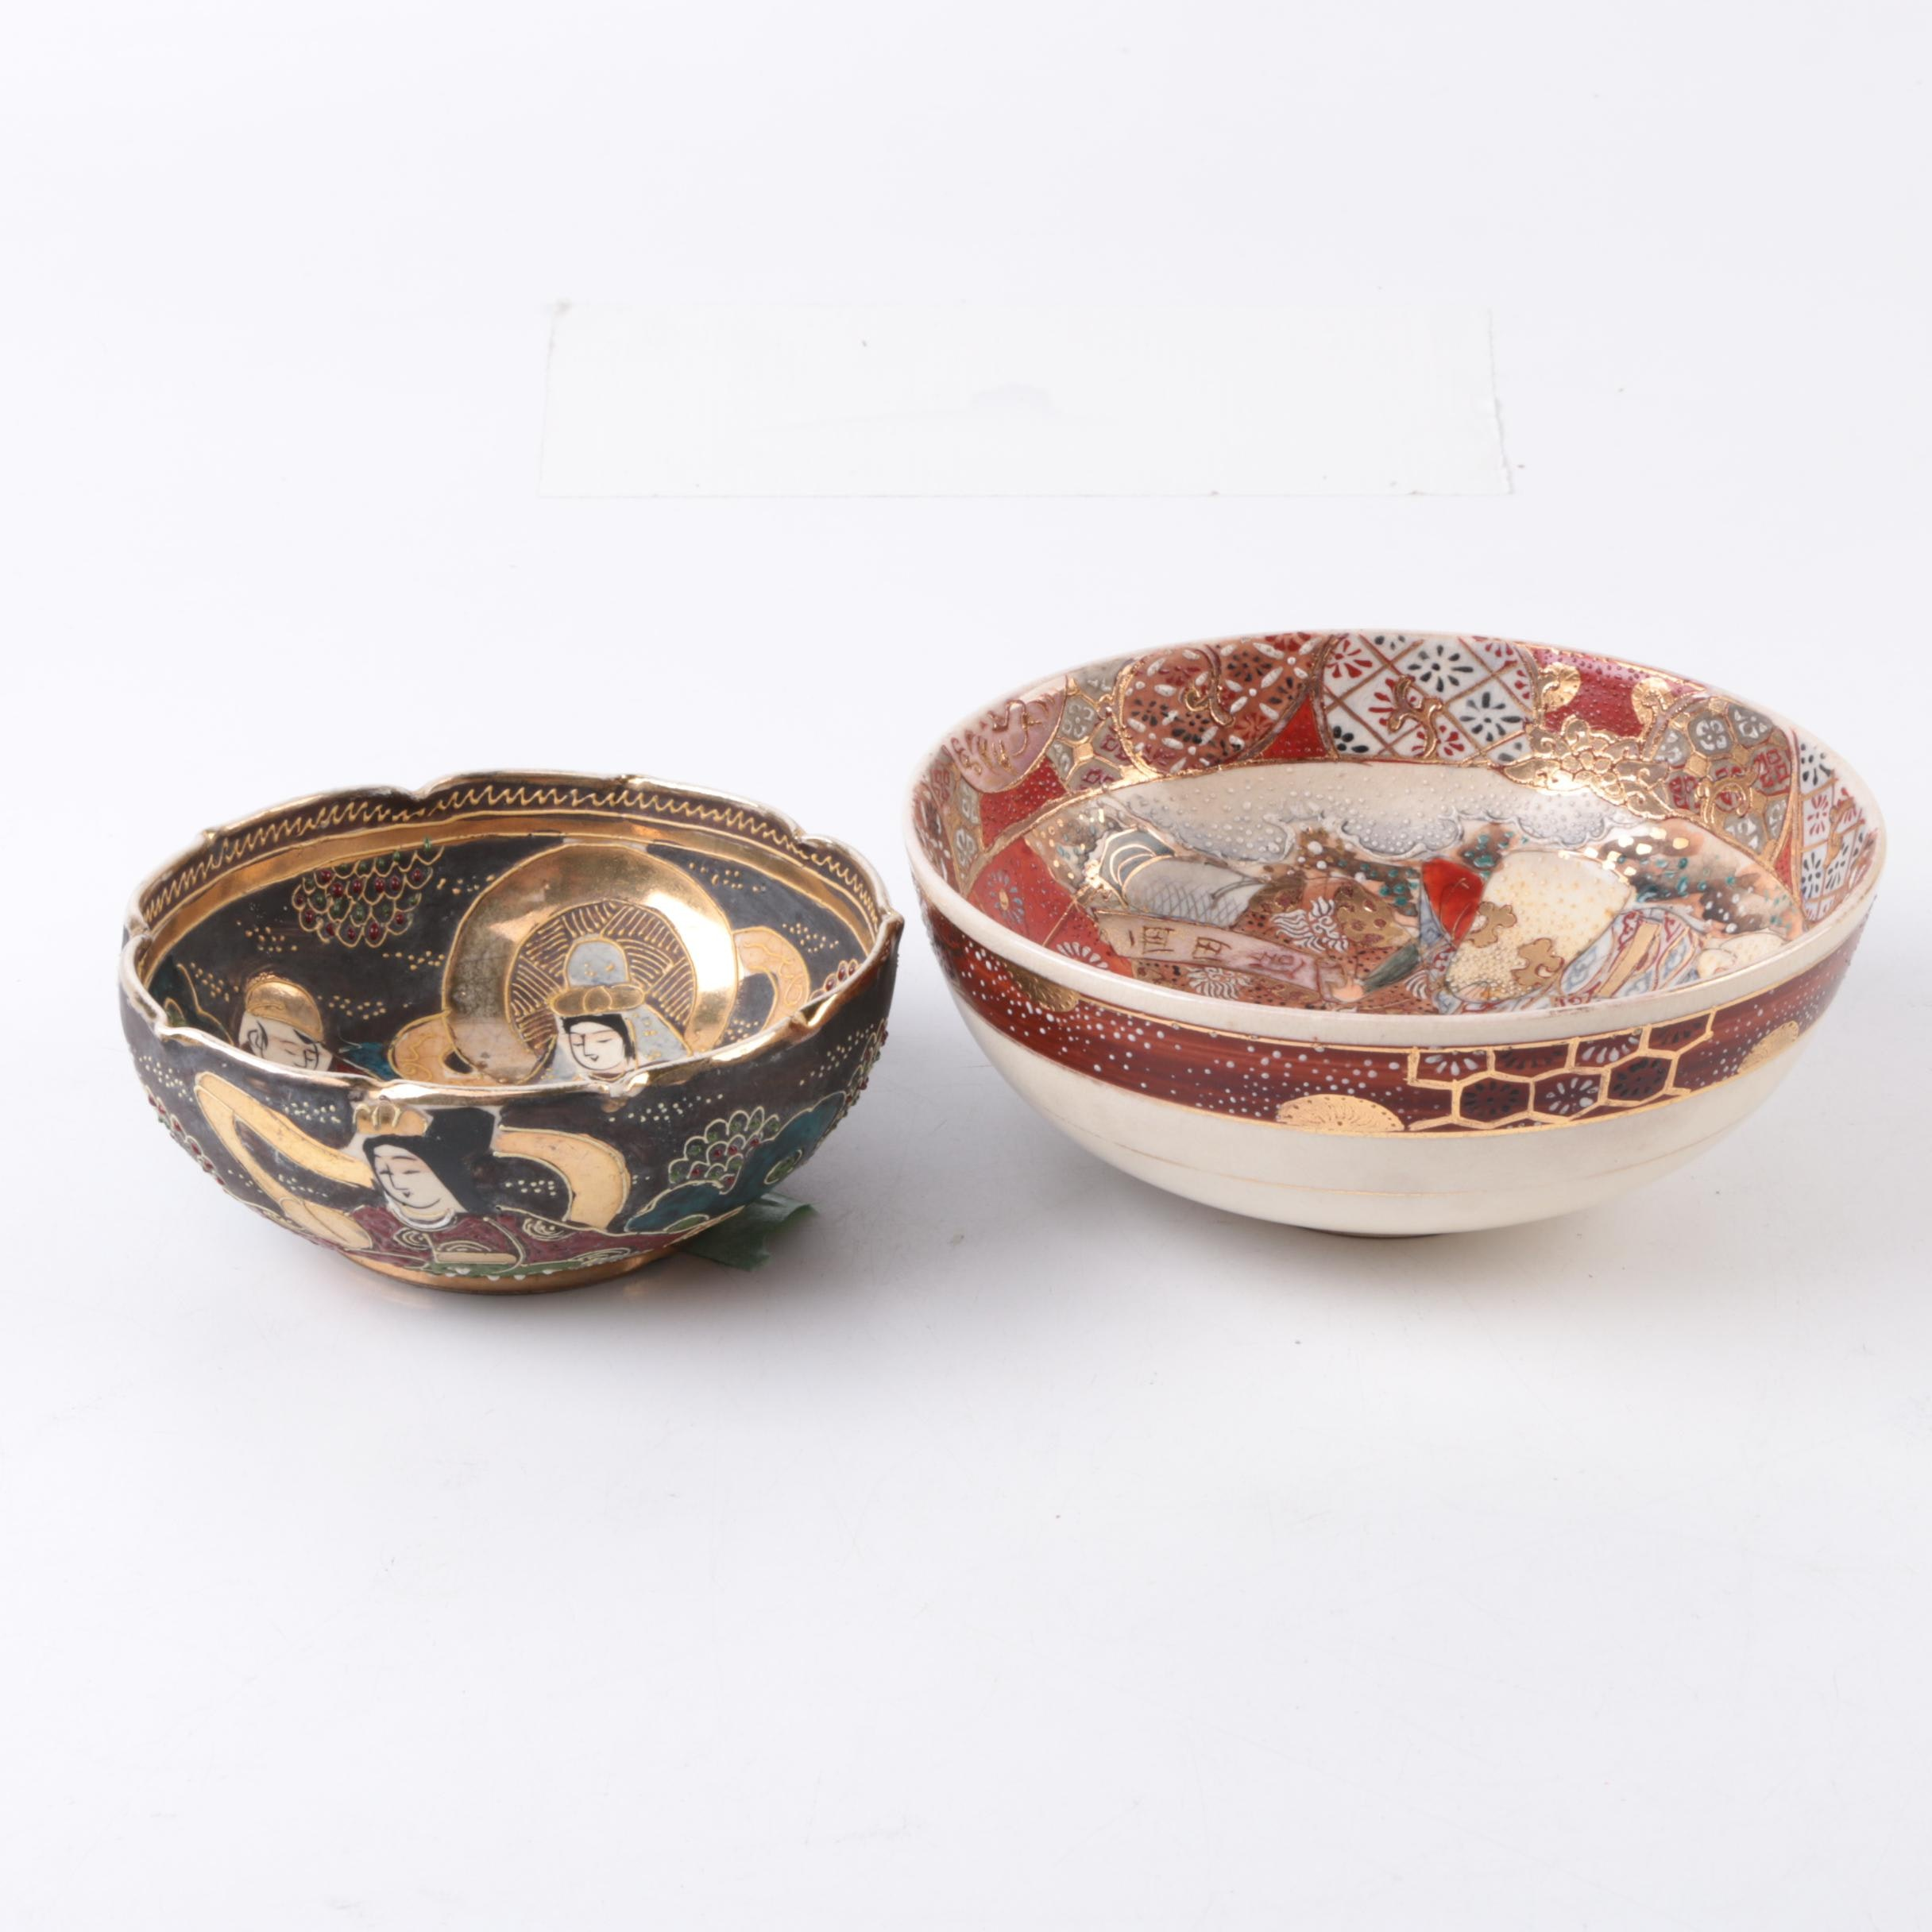 Early 20th Century Japanese Satsuma Ceramic Bowls